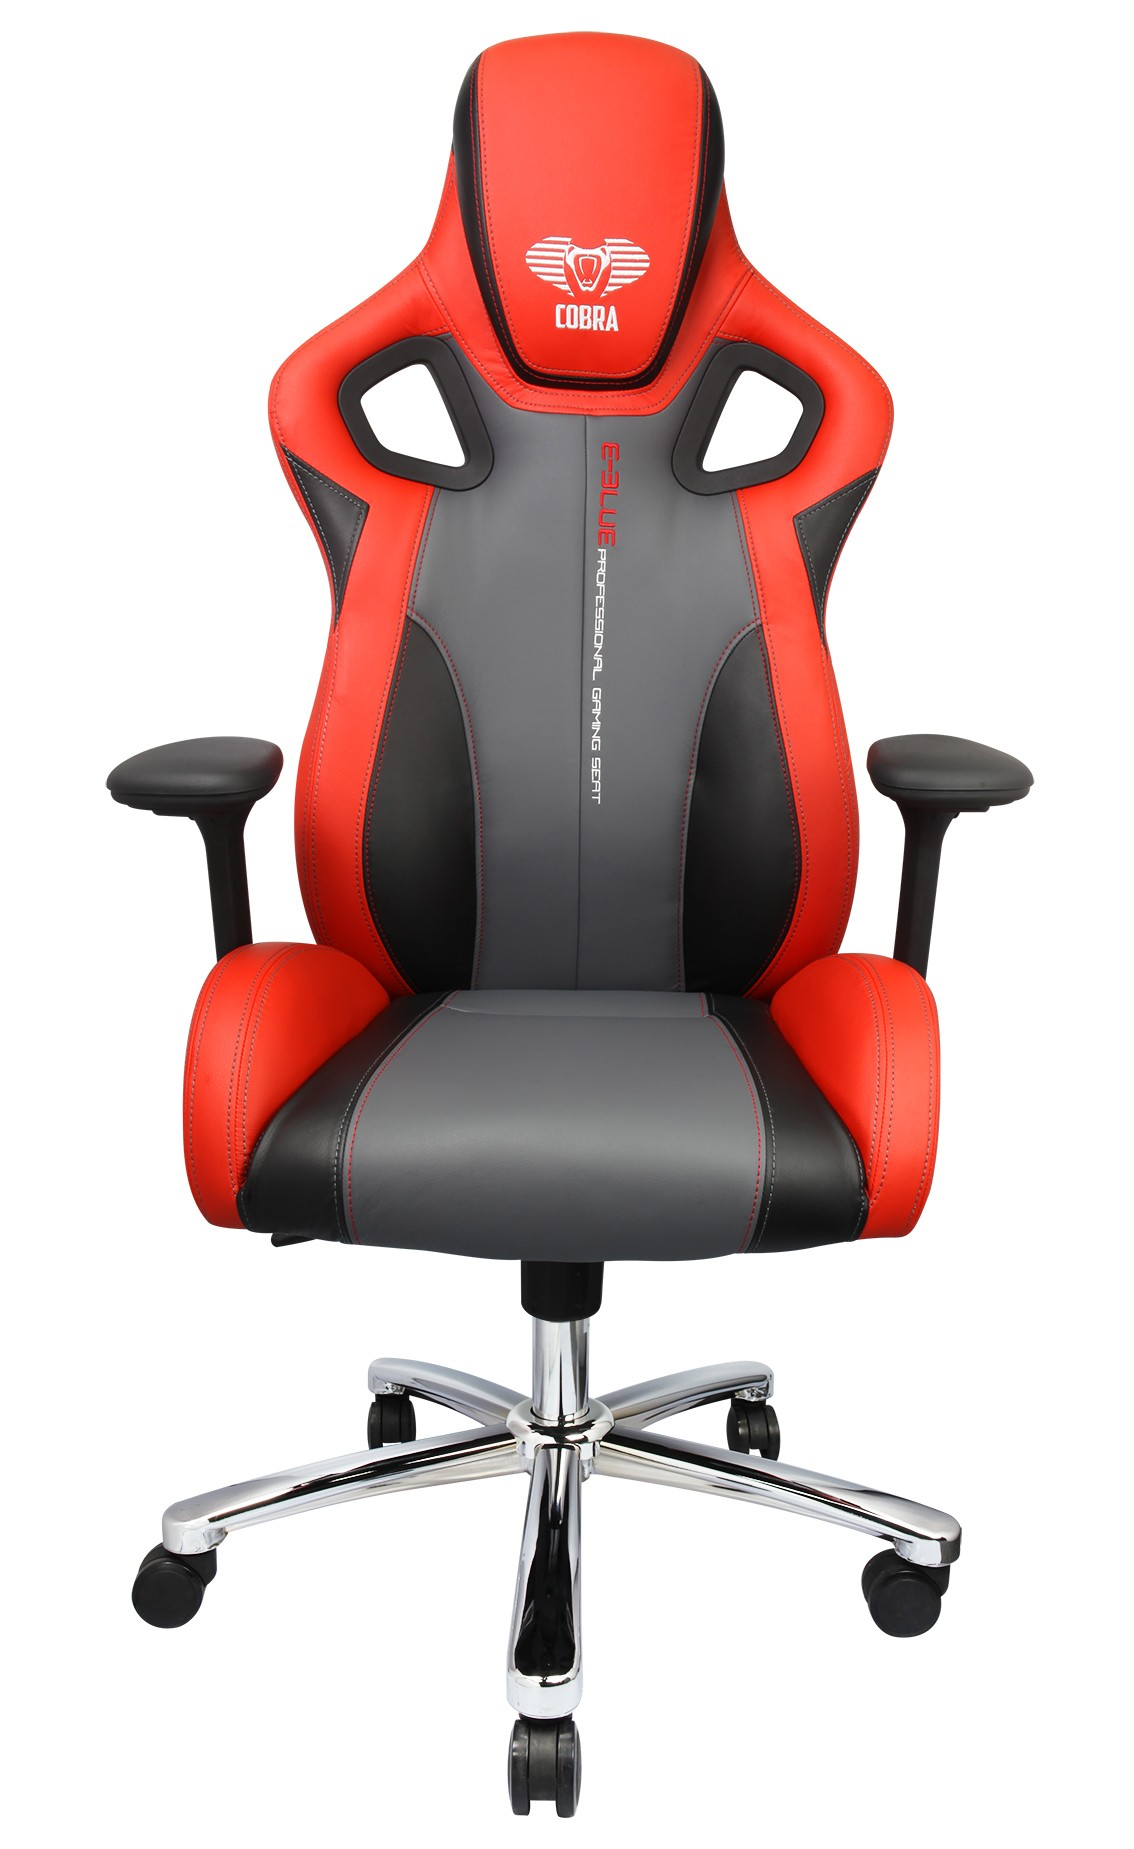 Pleasant E Blue Cobra X Gaming Chair Red Eec306 Blue And Black Eec303 Red And Black Eec303 Gmtry Best Dining Table And Chair Ideas Images Gmtryco